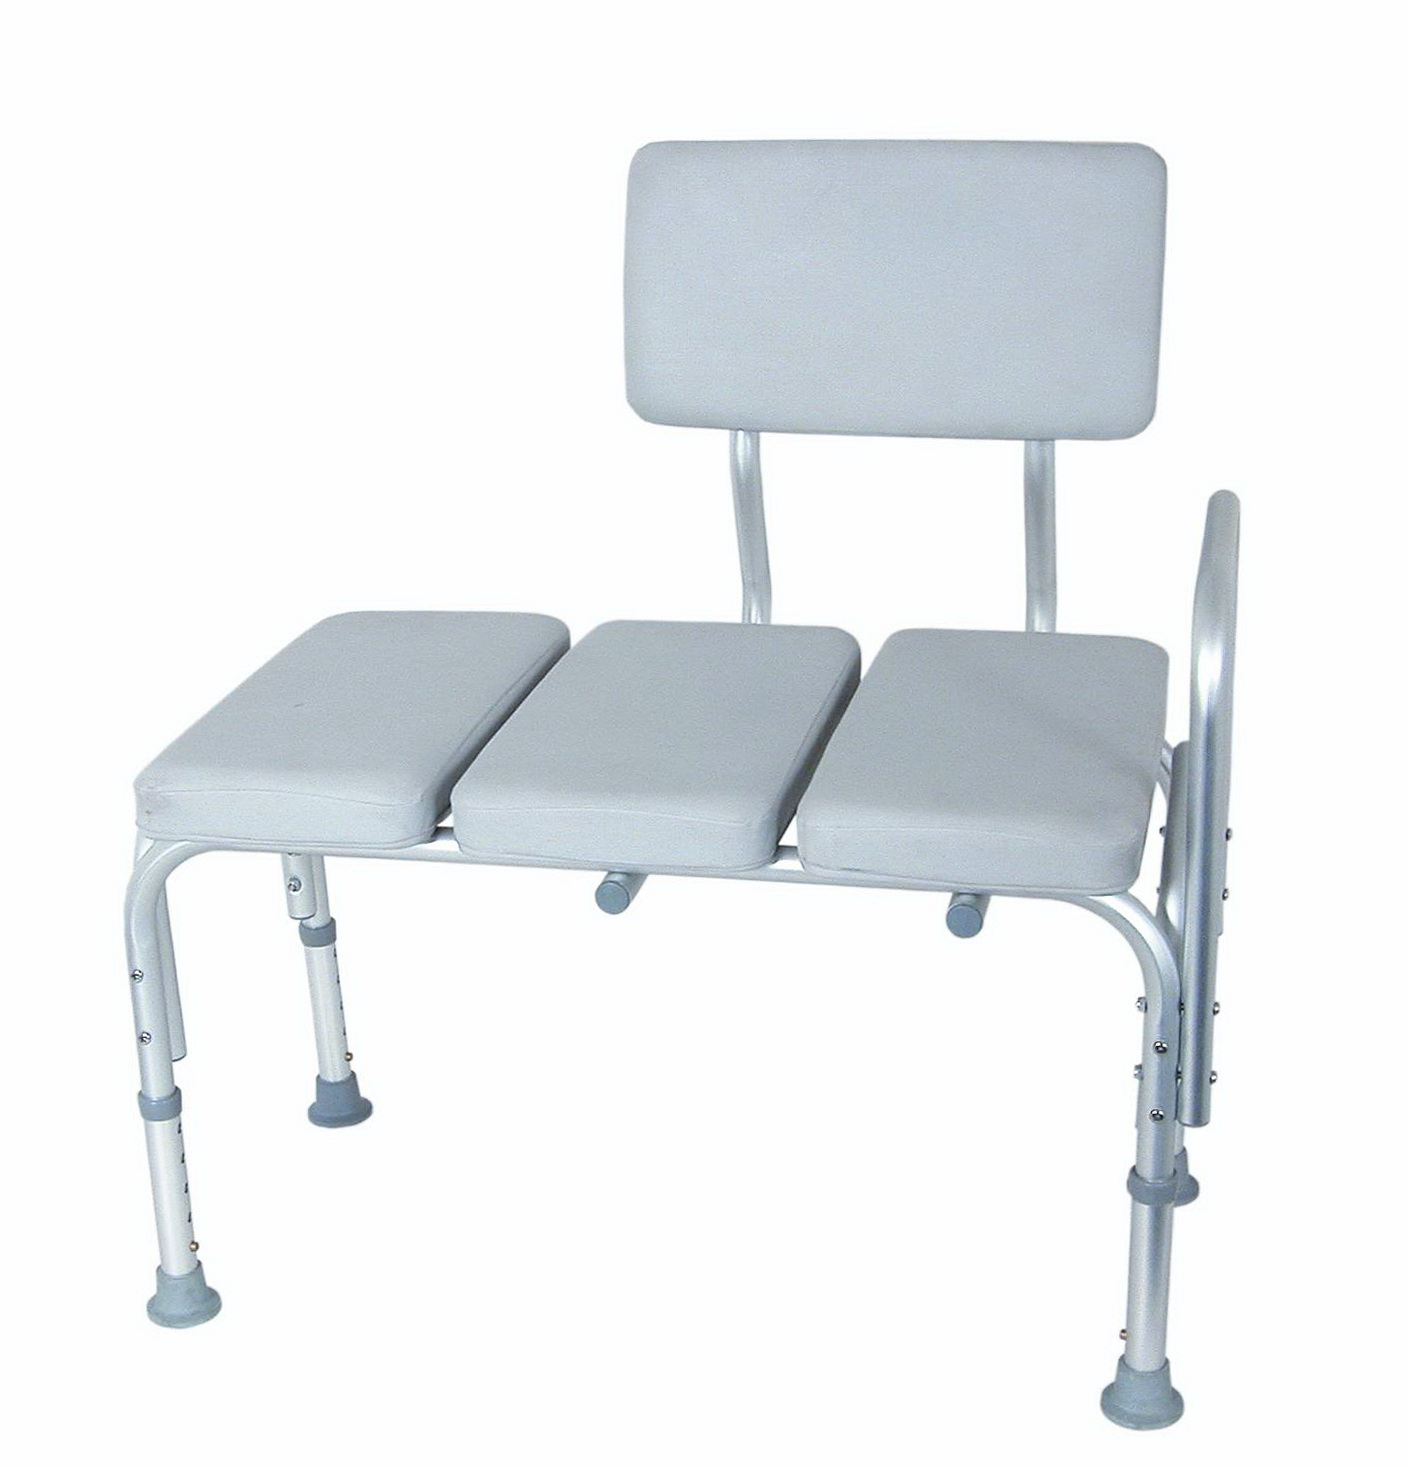 Sliding Transfer Bench With Cut Out Swivel Seat Home